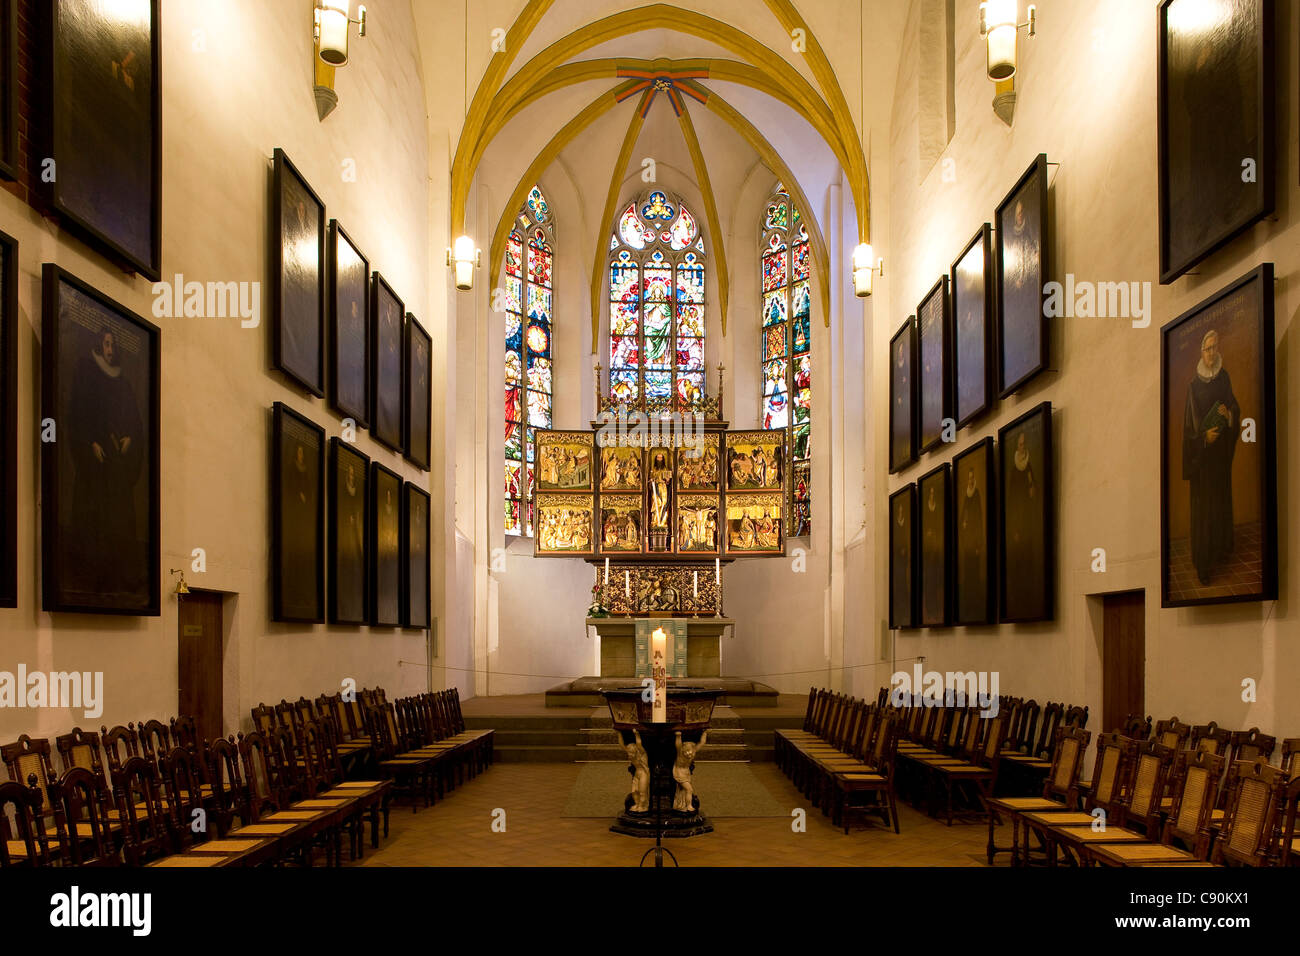 Interior view of St. Thomas Church, Leipzig, Saxony, Germany, Europe - Stock Image